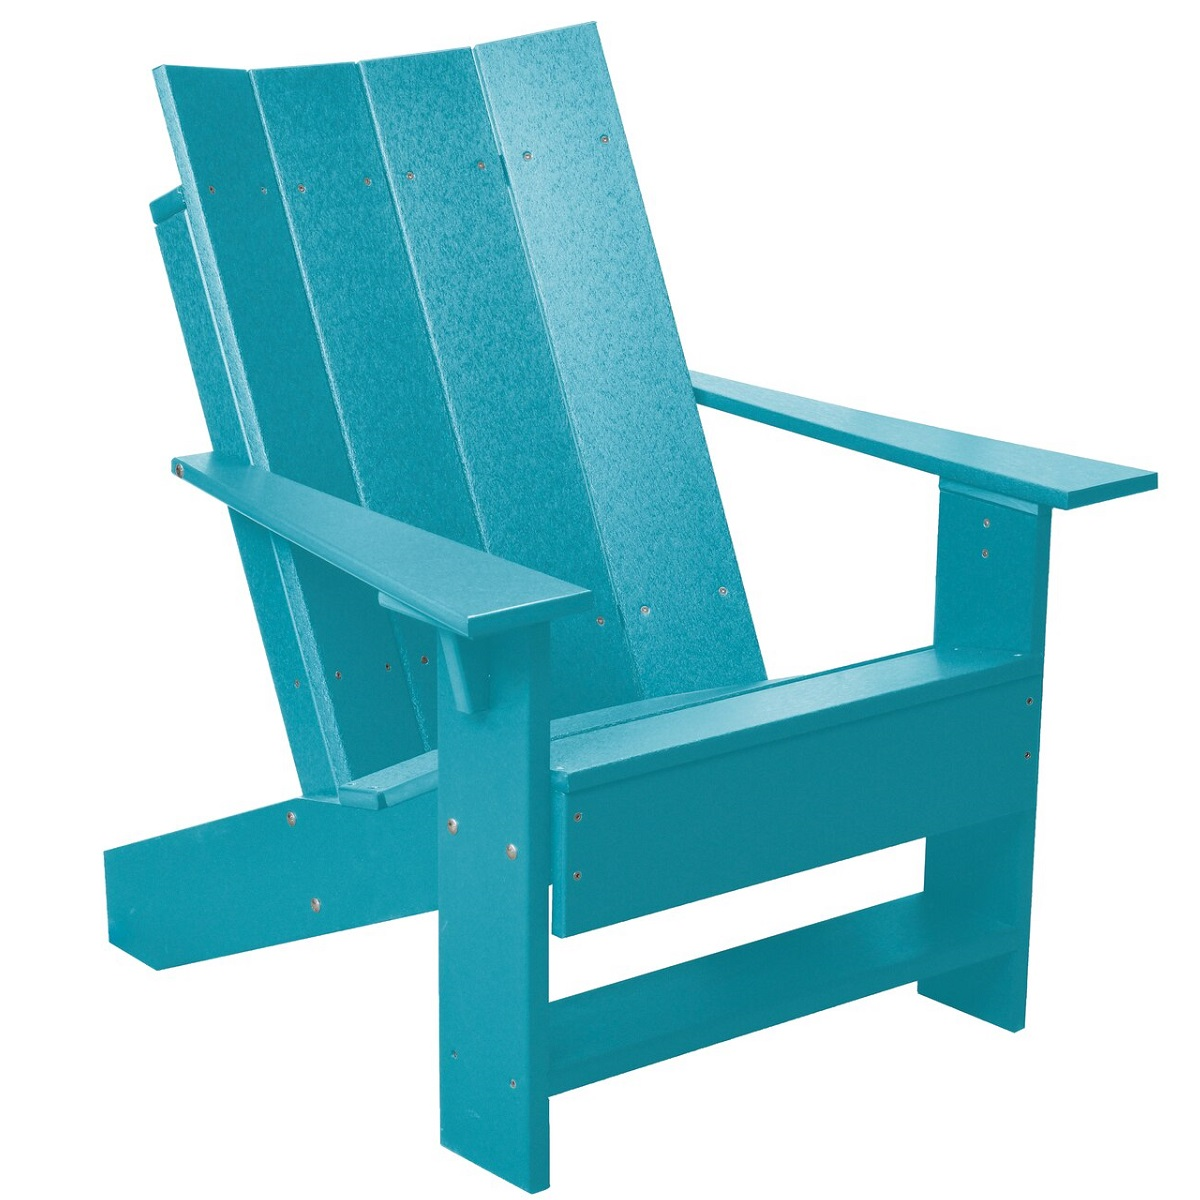 Contemporary Low Adirondack Chair